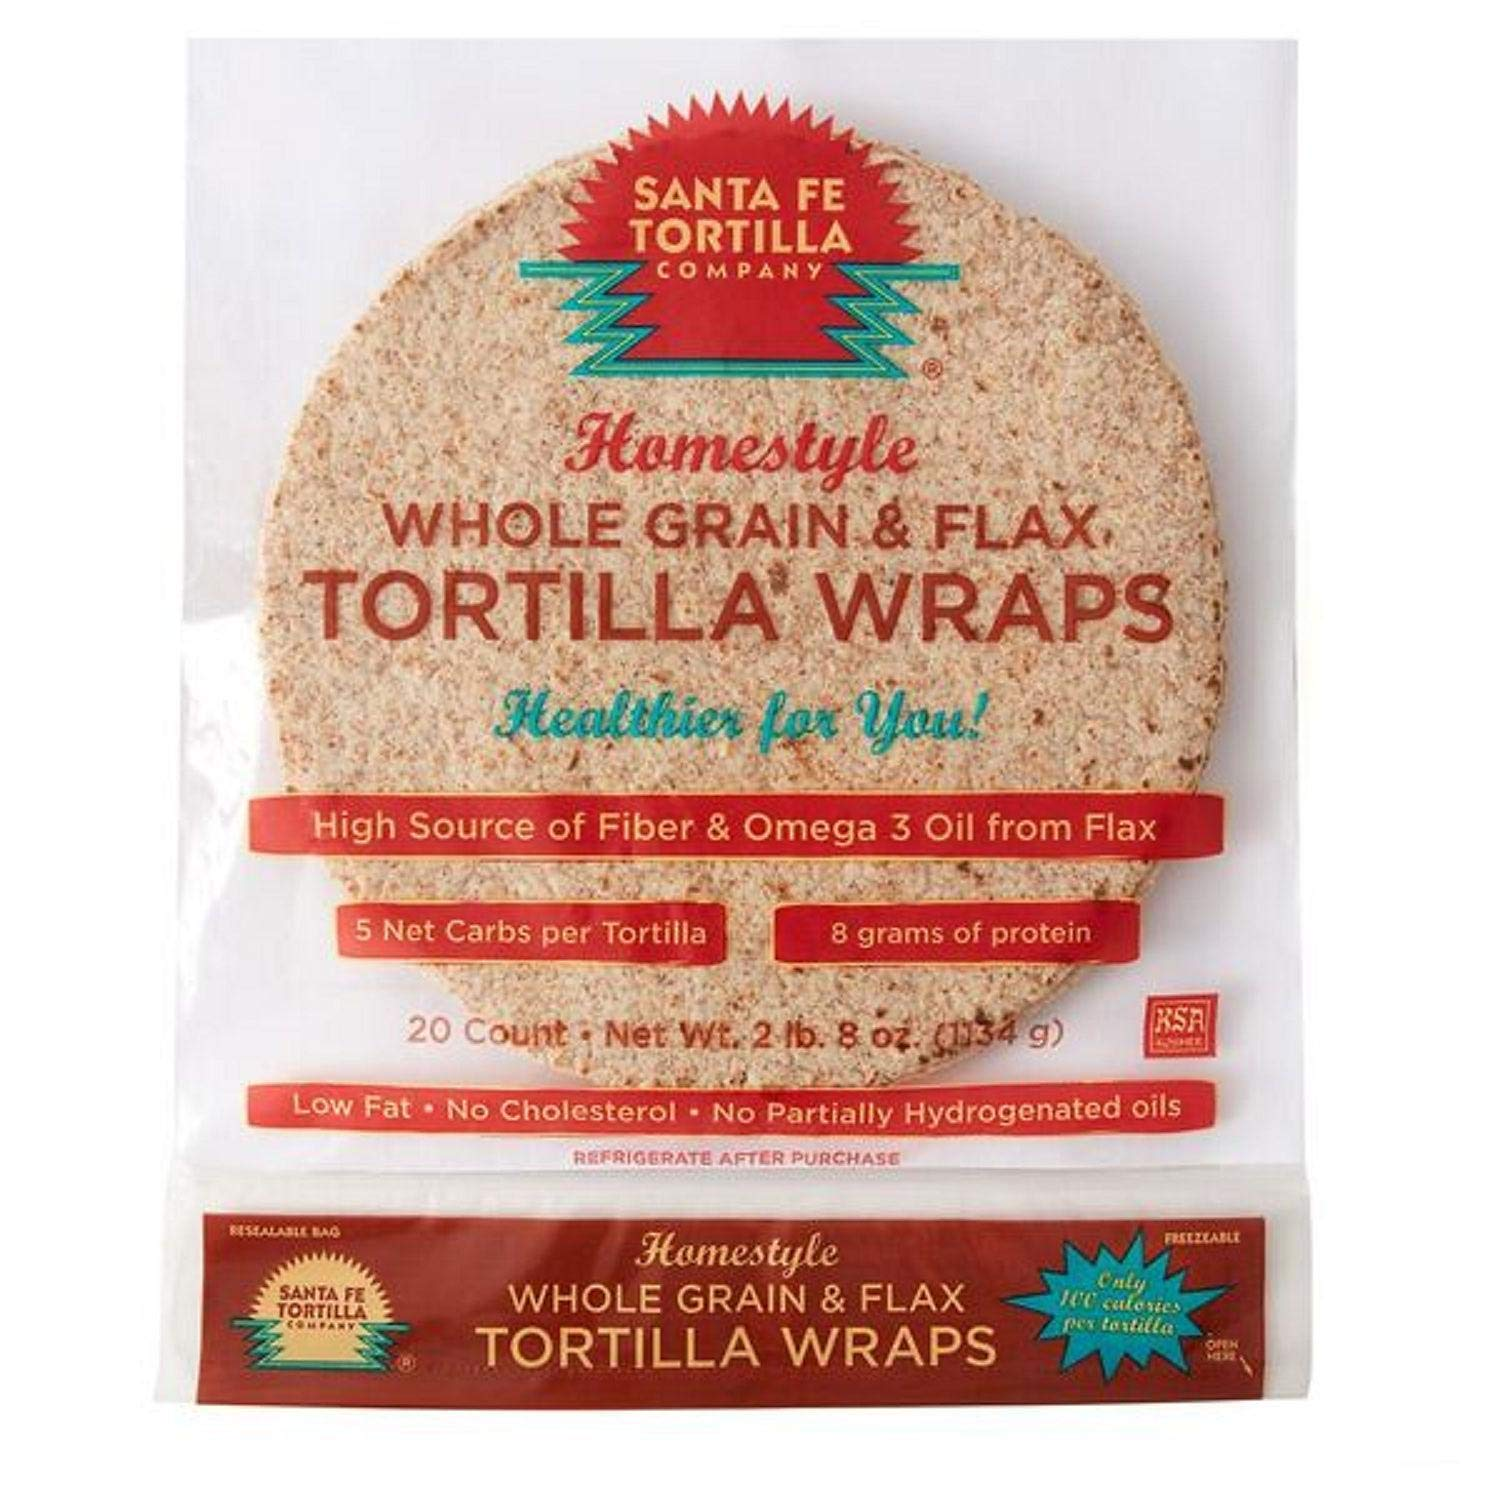 Santa Fe Tortilla Company Home Style Whole Grain Wraps With Flaxseed 20ct Amazon Com Grocery Gourmet Food